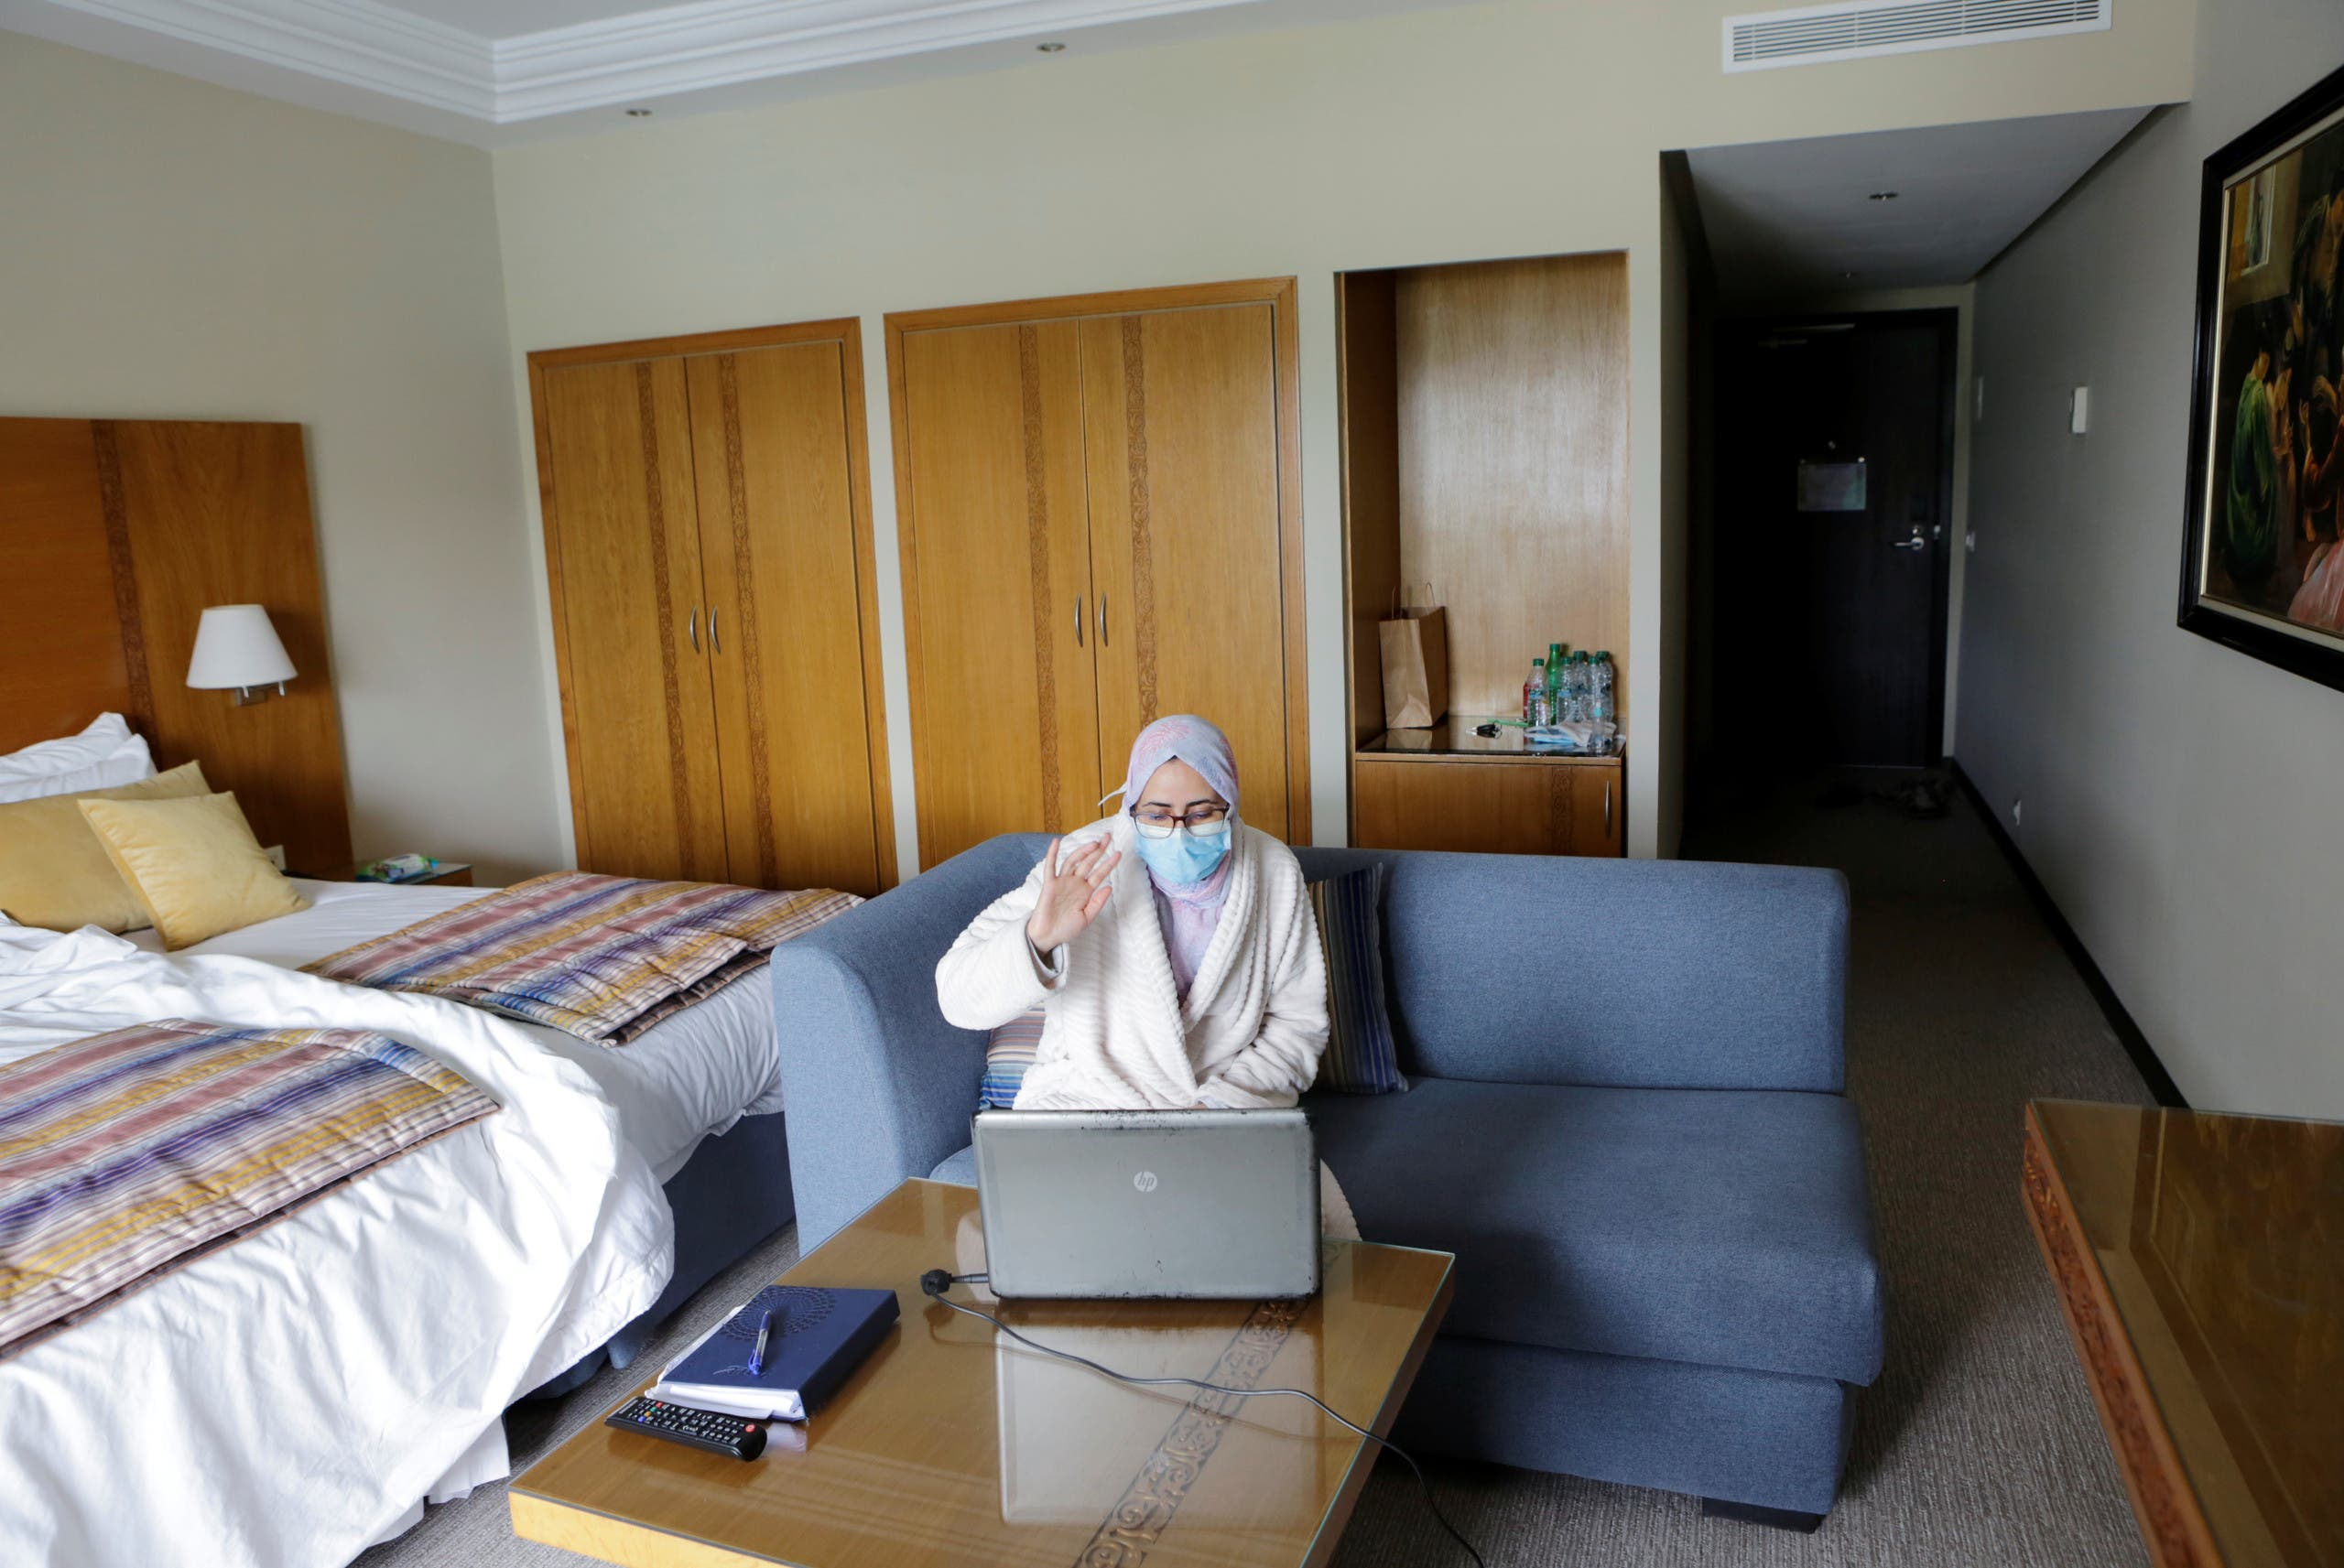 Nurse anesthetist Teimi Hakima uses a laptop to make a video call and speak with her family in her room at hotel Dawliz in Sale. (Reuters)